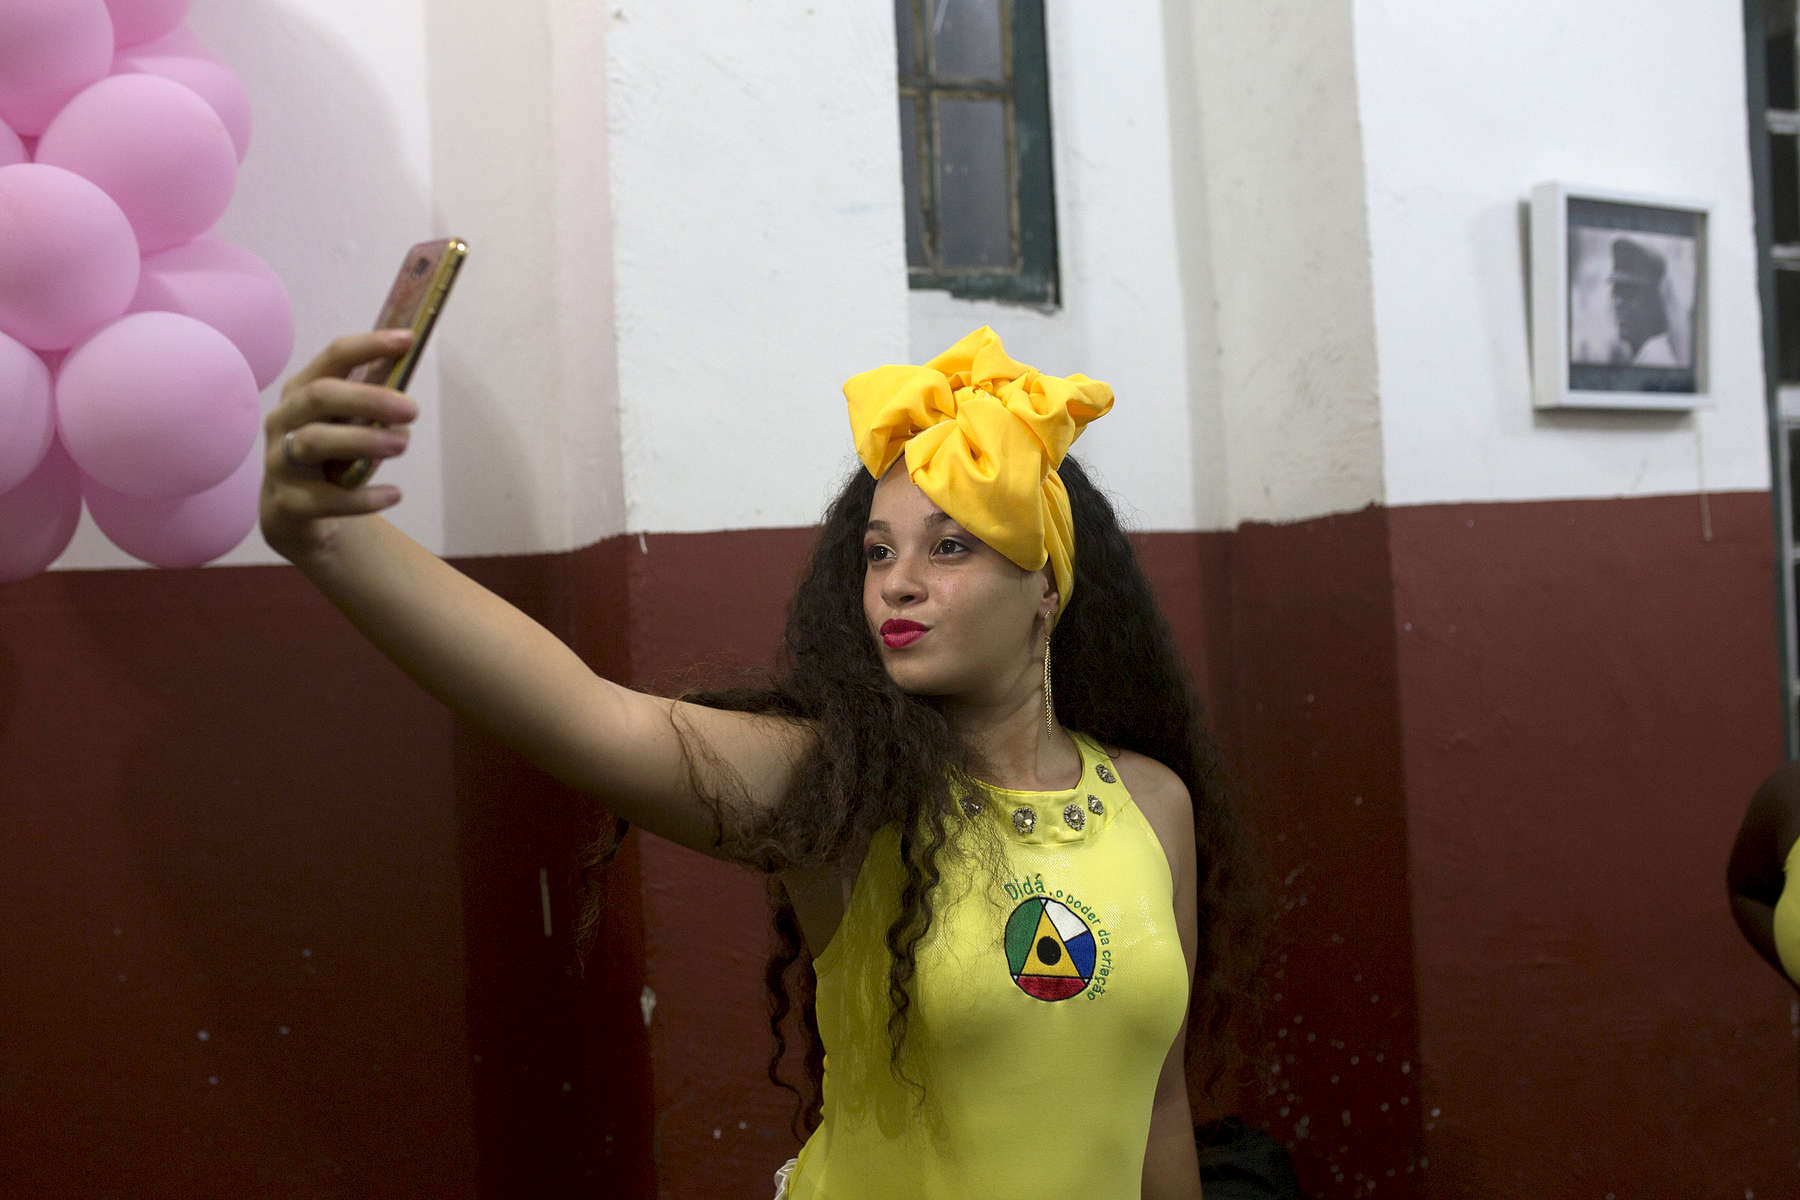 Jennifer Bispo takes selfie before a performance at Project Didá in Salvador's historic neighborhood, Pelourinho.